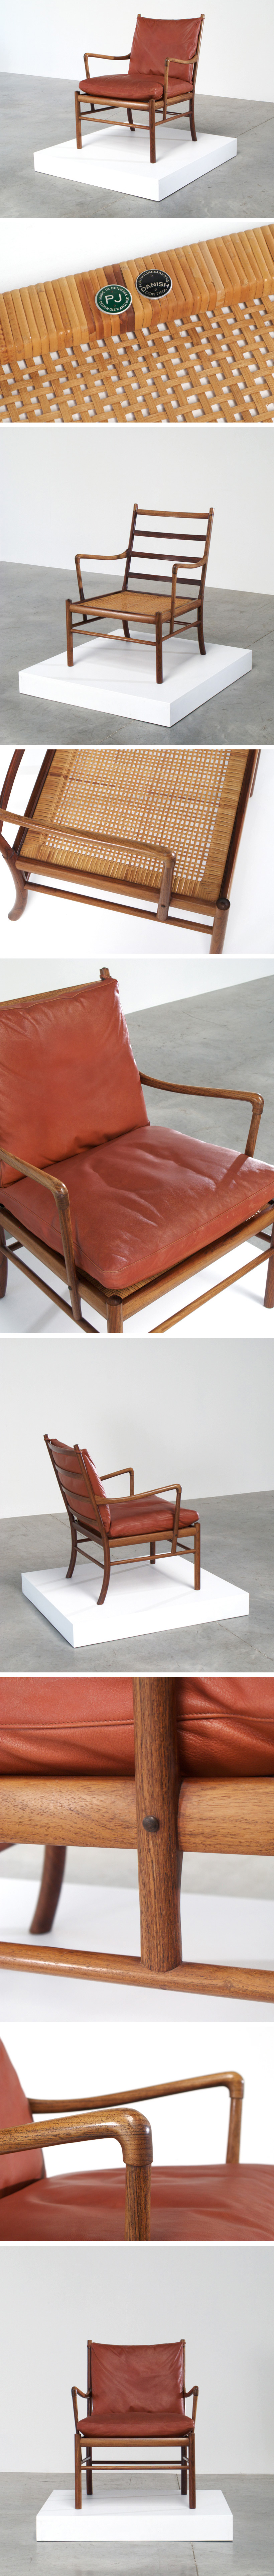 Ole Wanscher Colonial Easy chair P. Jeppesen Large